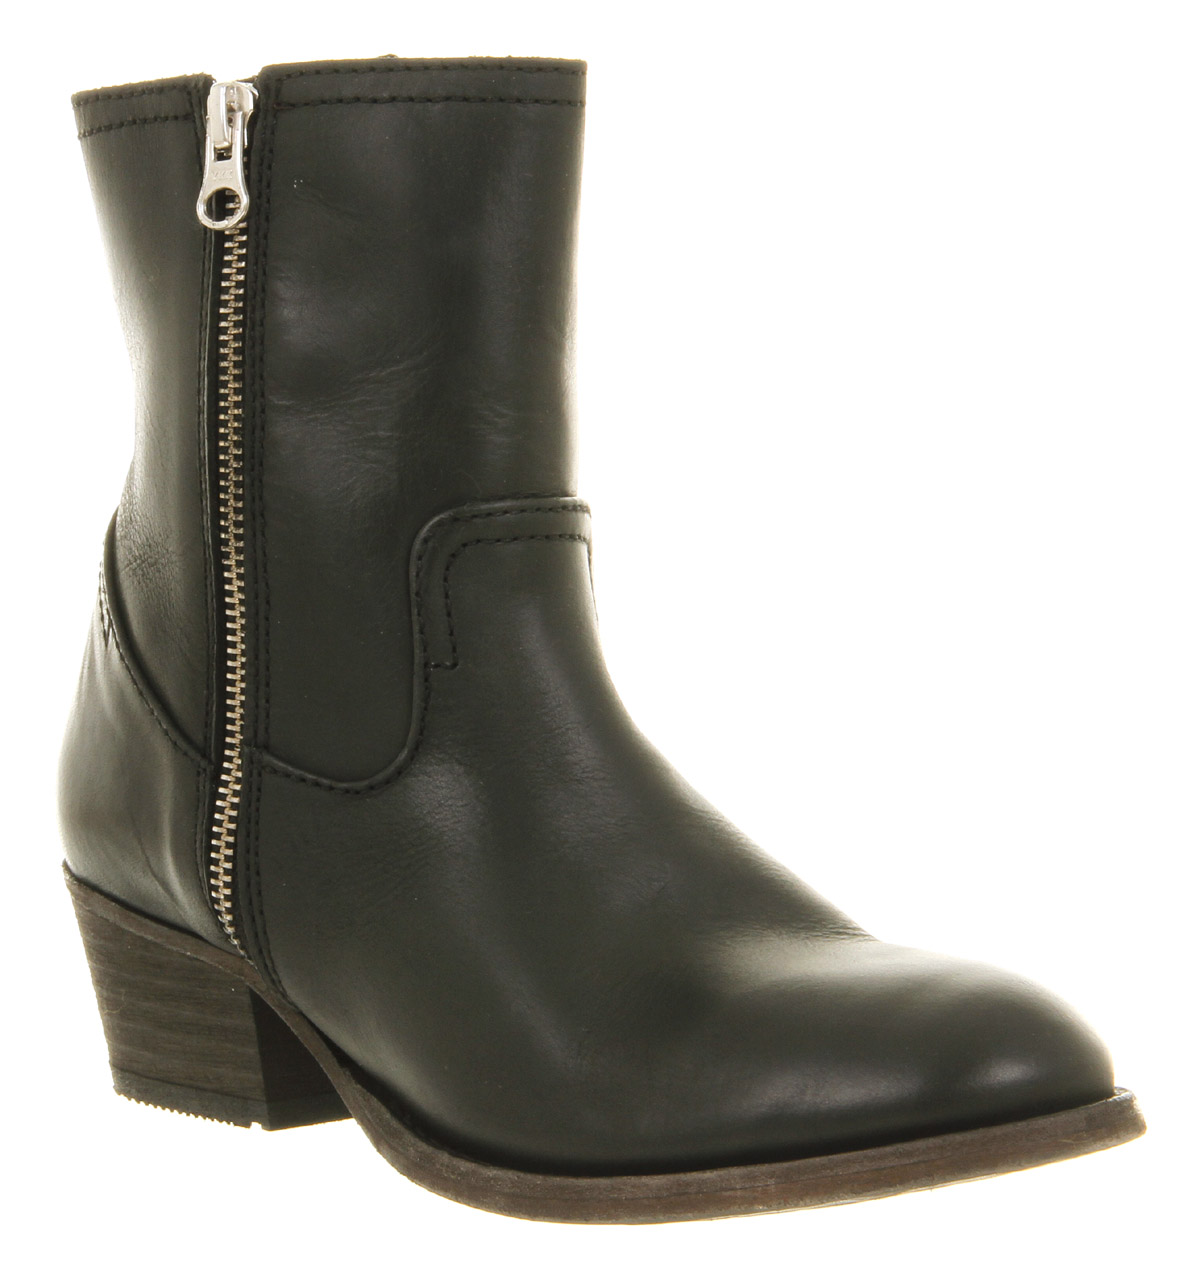 h by hudson zip ankle boot in black lyst